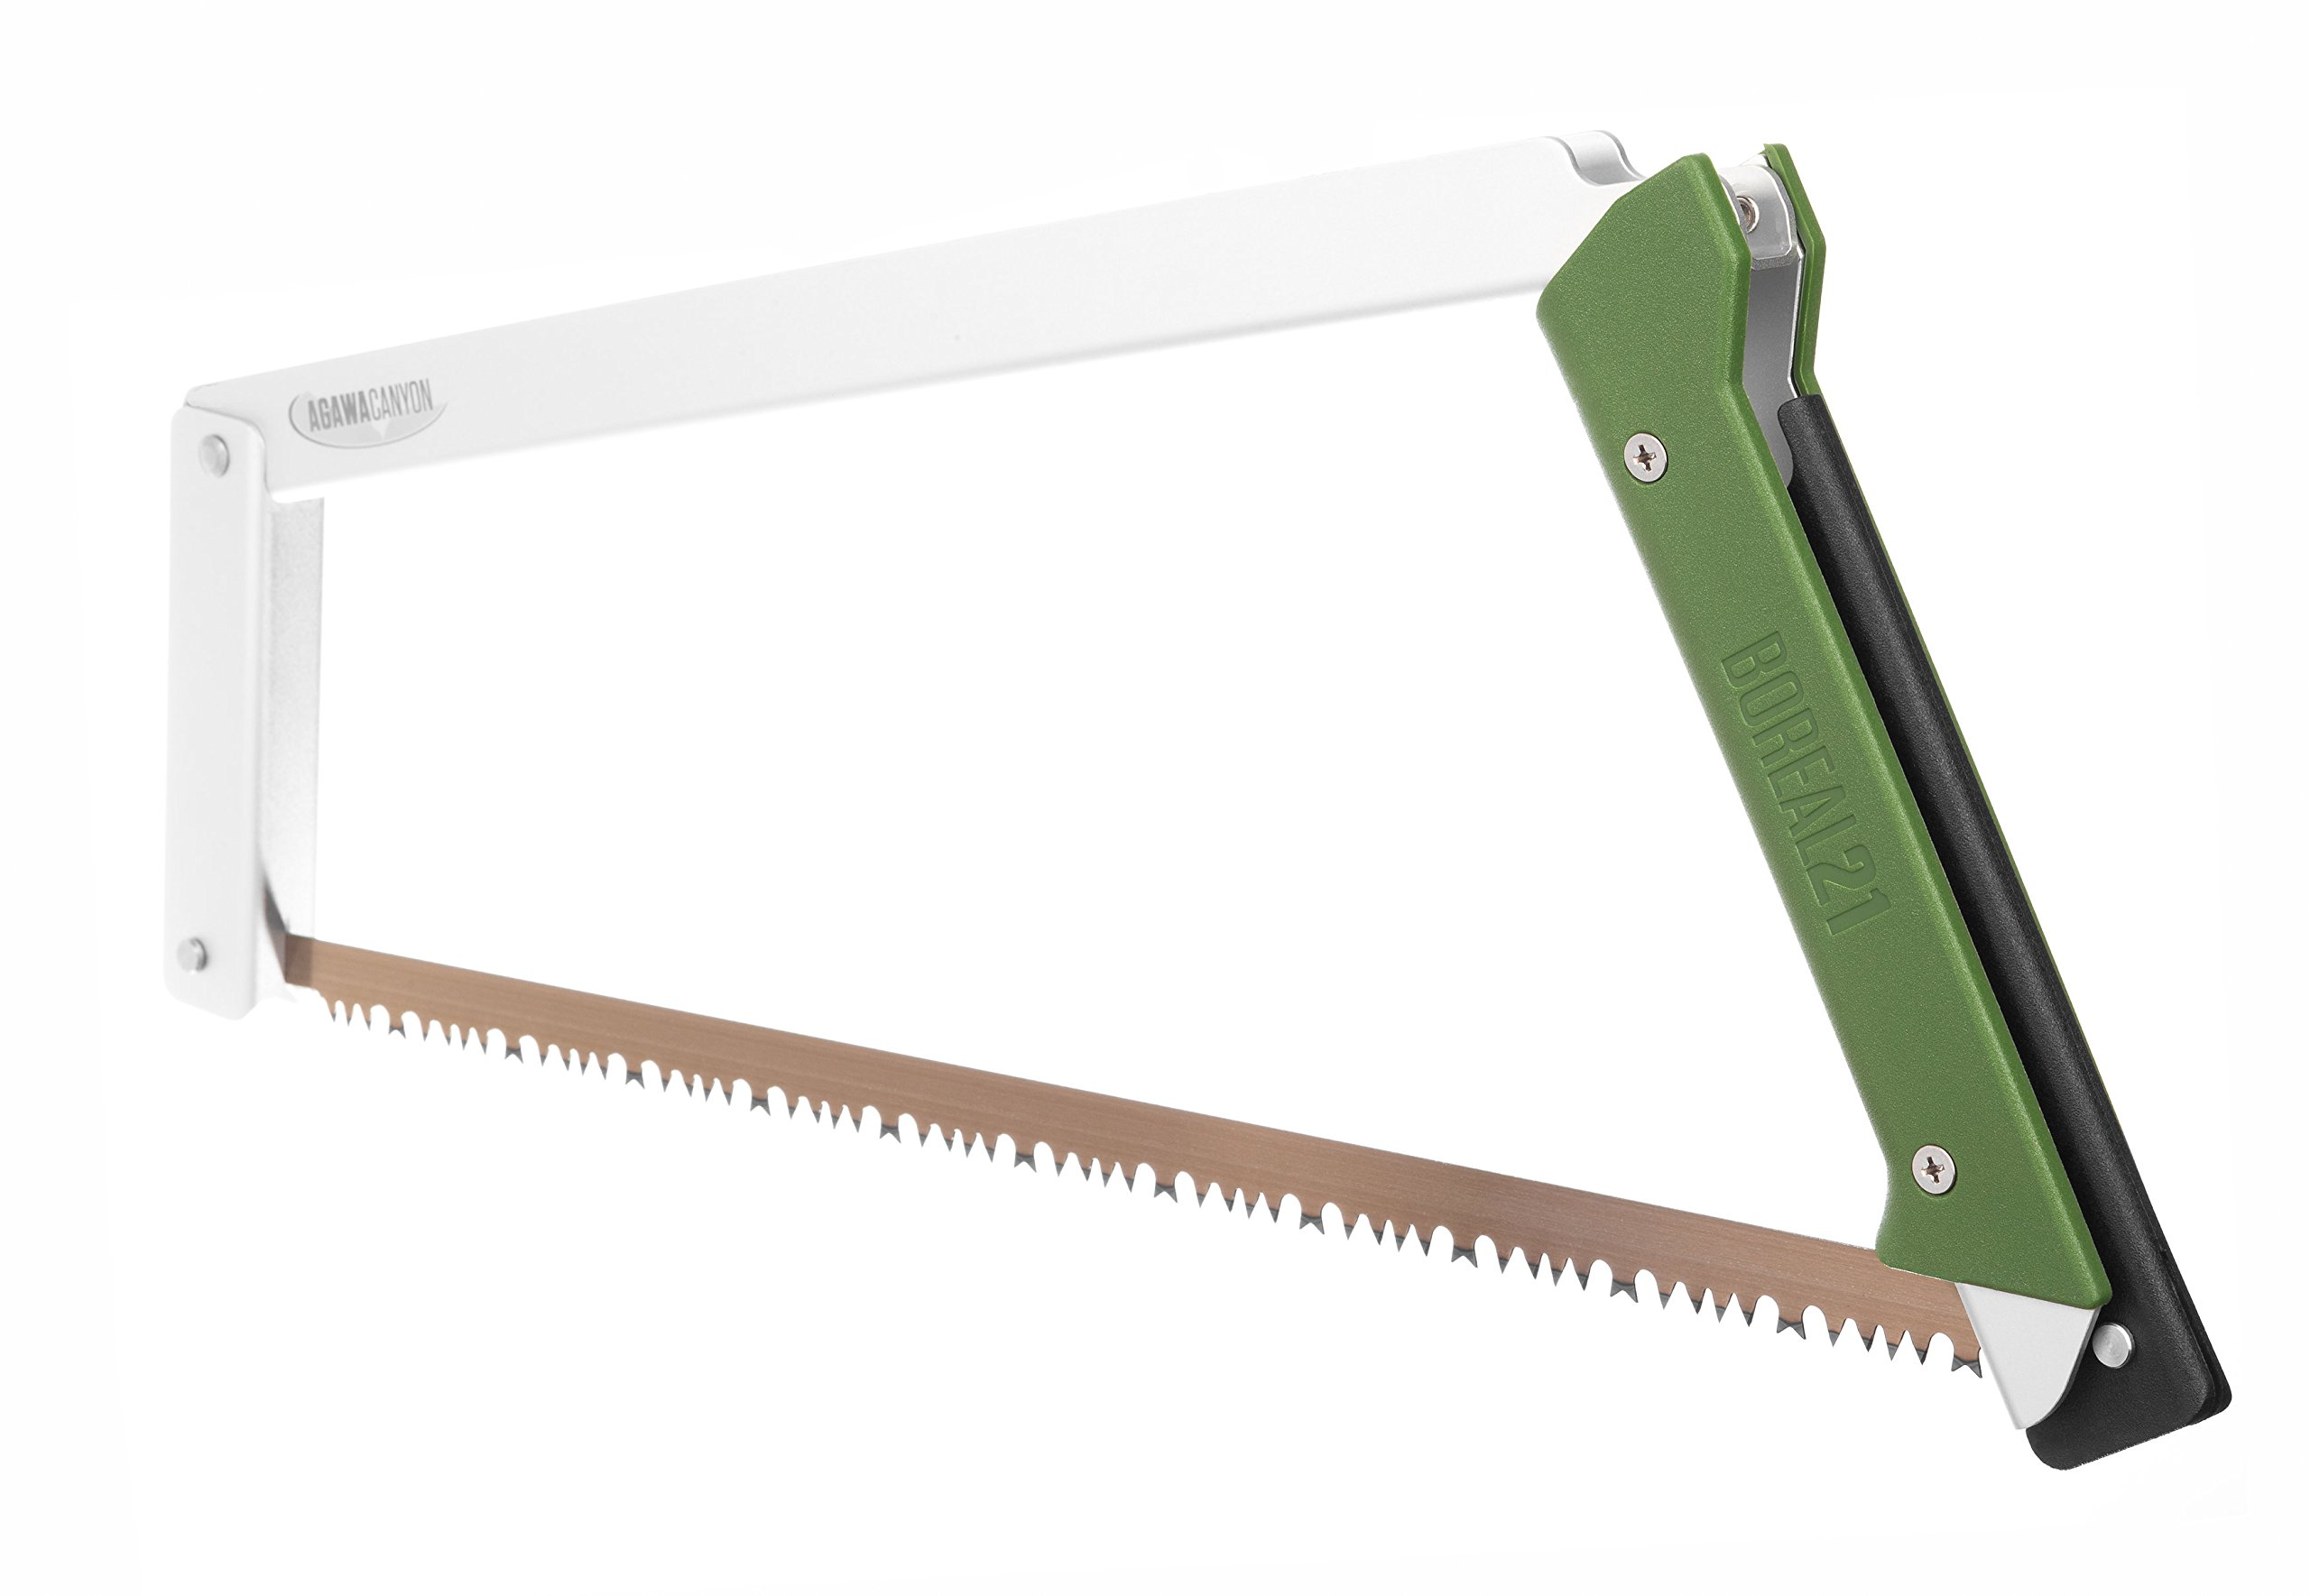 Agawa Canyon - BOREAL21 Folding Bow Saw - Clear Frame, Green Handle, All-Purpose Blade